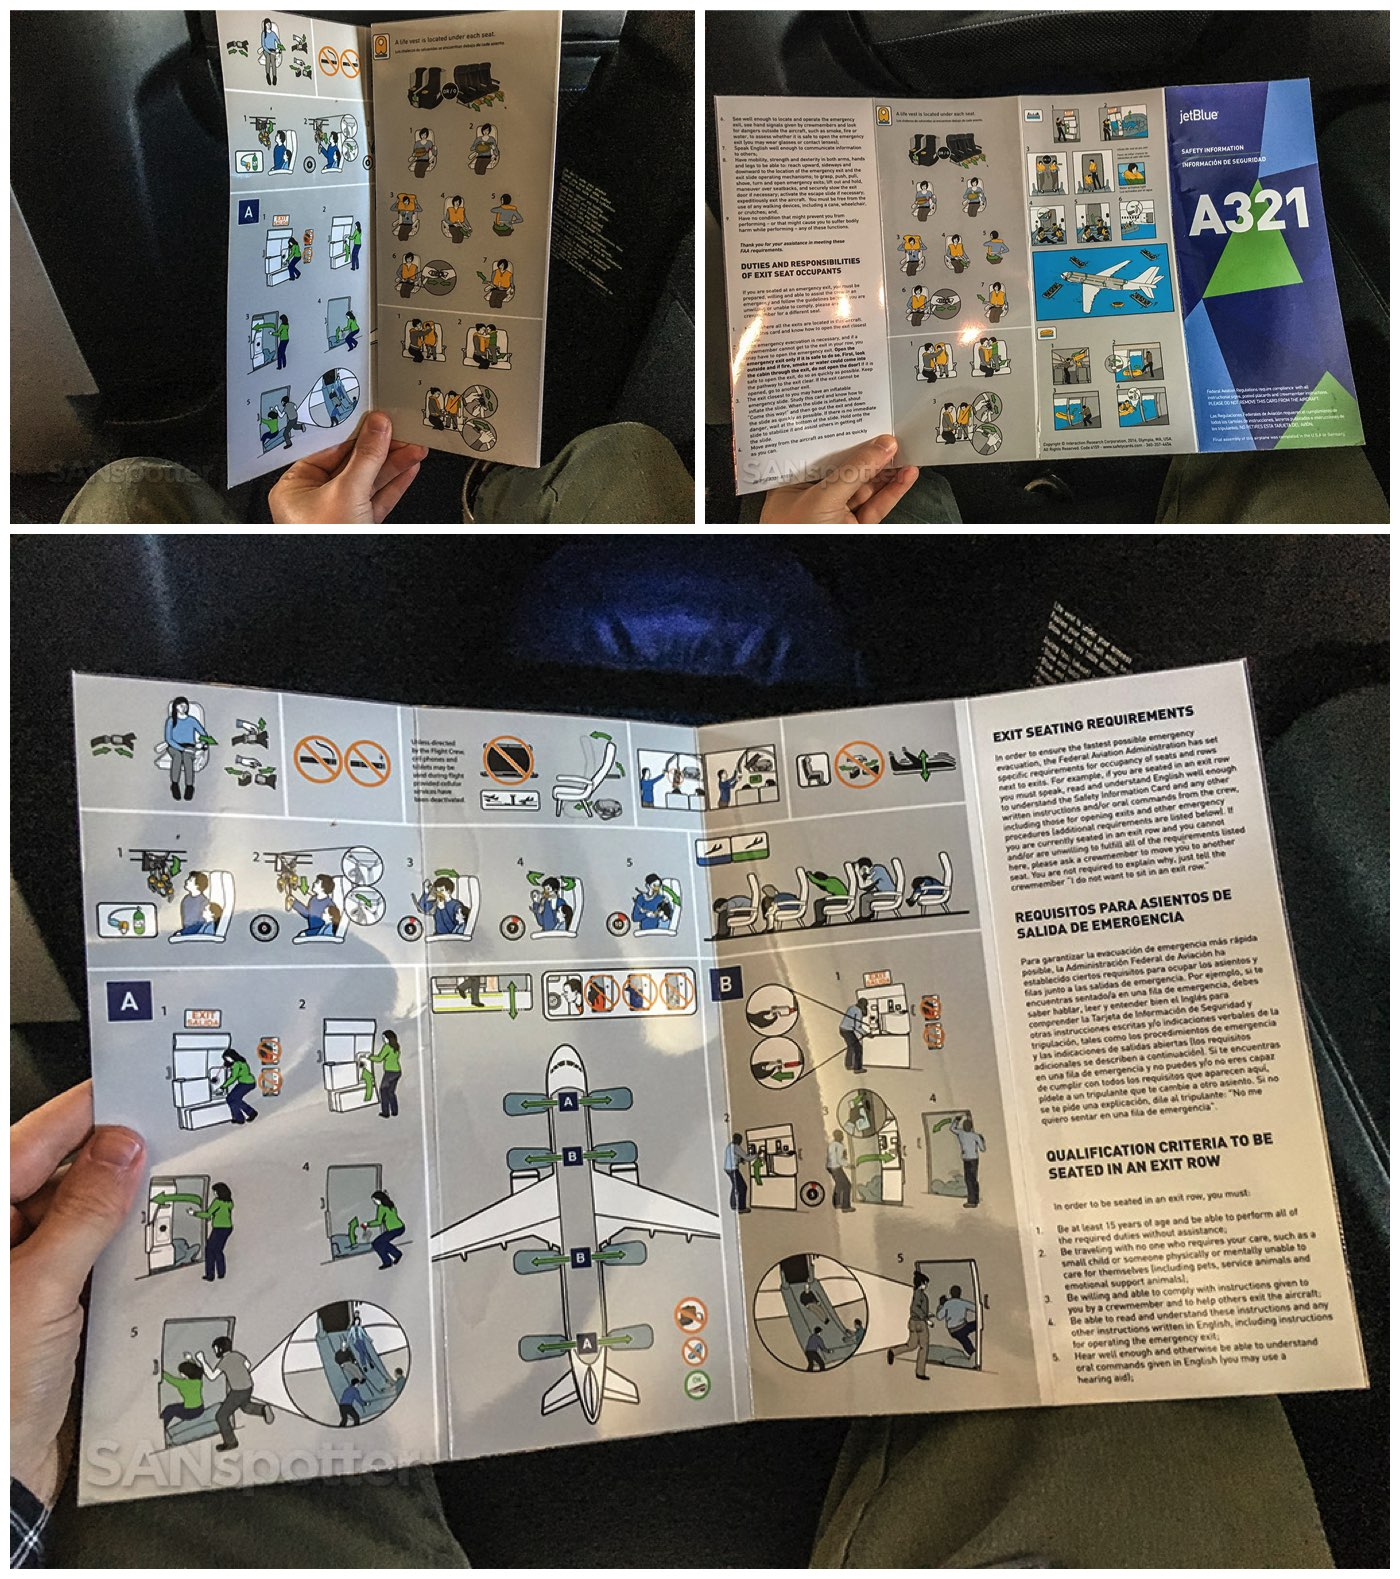 JetBlue A321 safety card